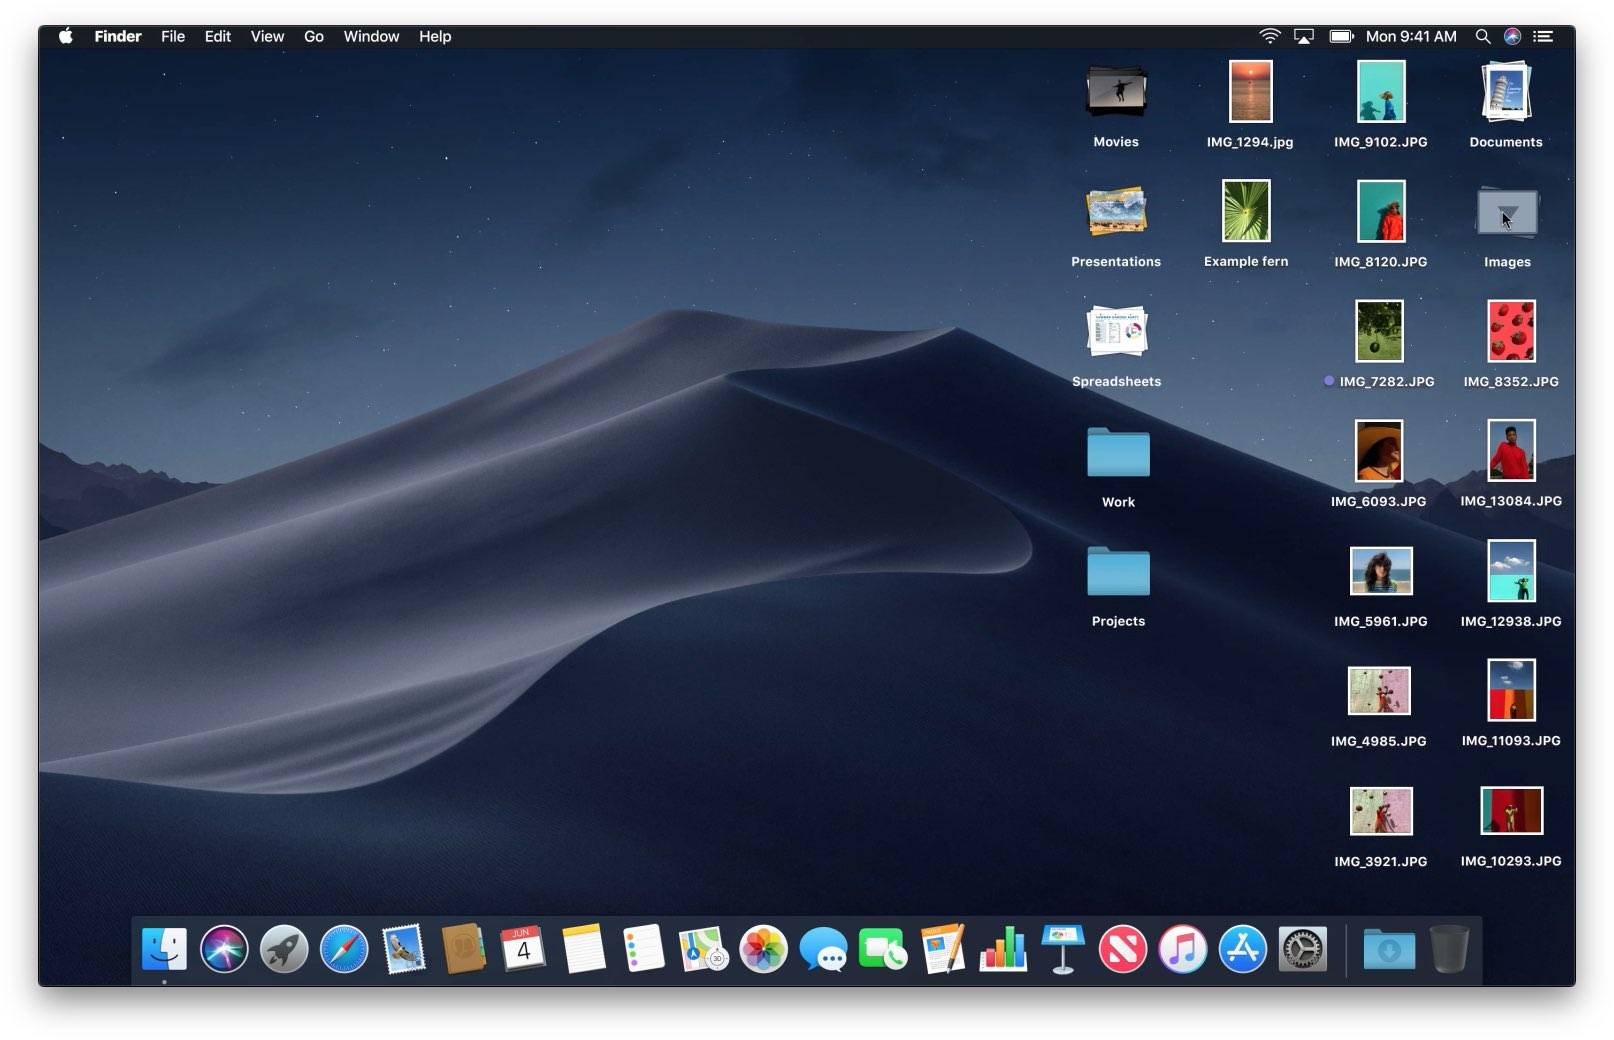 A tidied-up macOS Mojave desktop after the Stacks function has been used